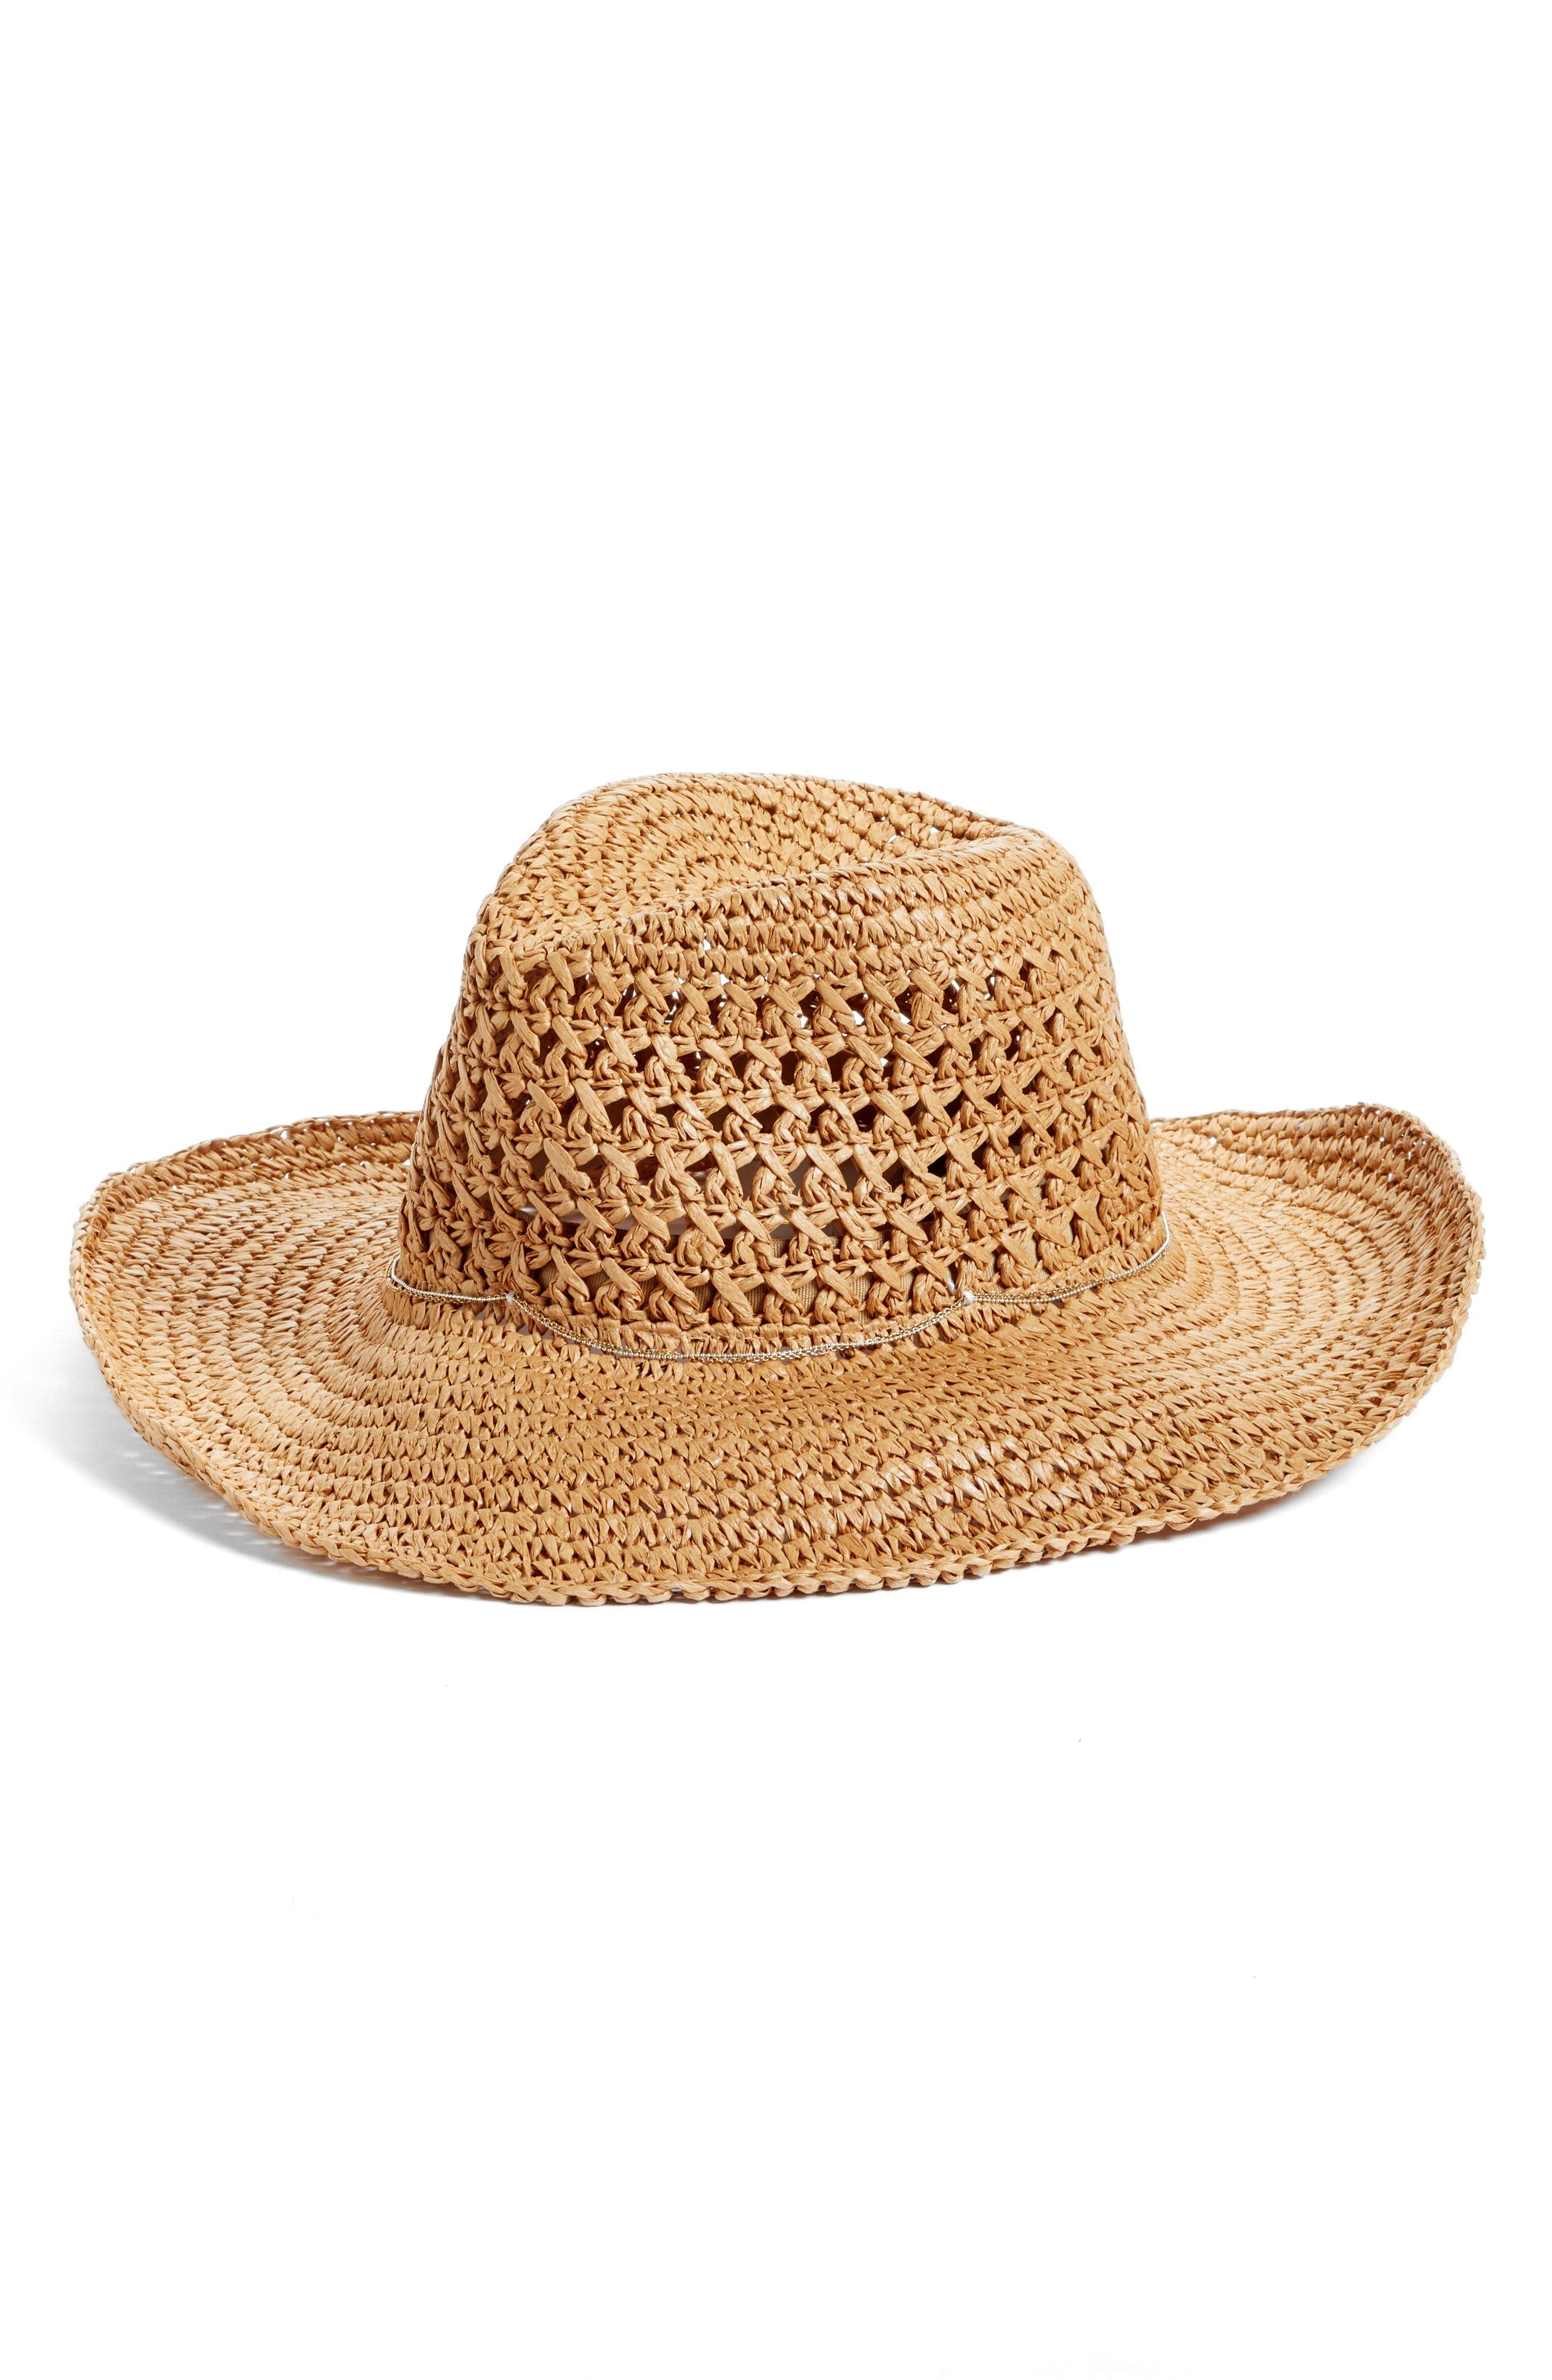 Alternate Image 1 Selected - Hinge Paper Straw Cowboy Hat